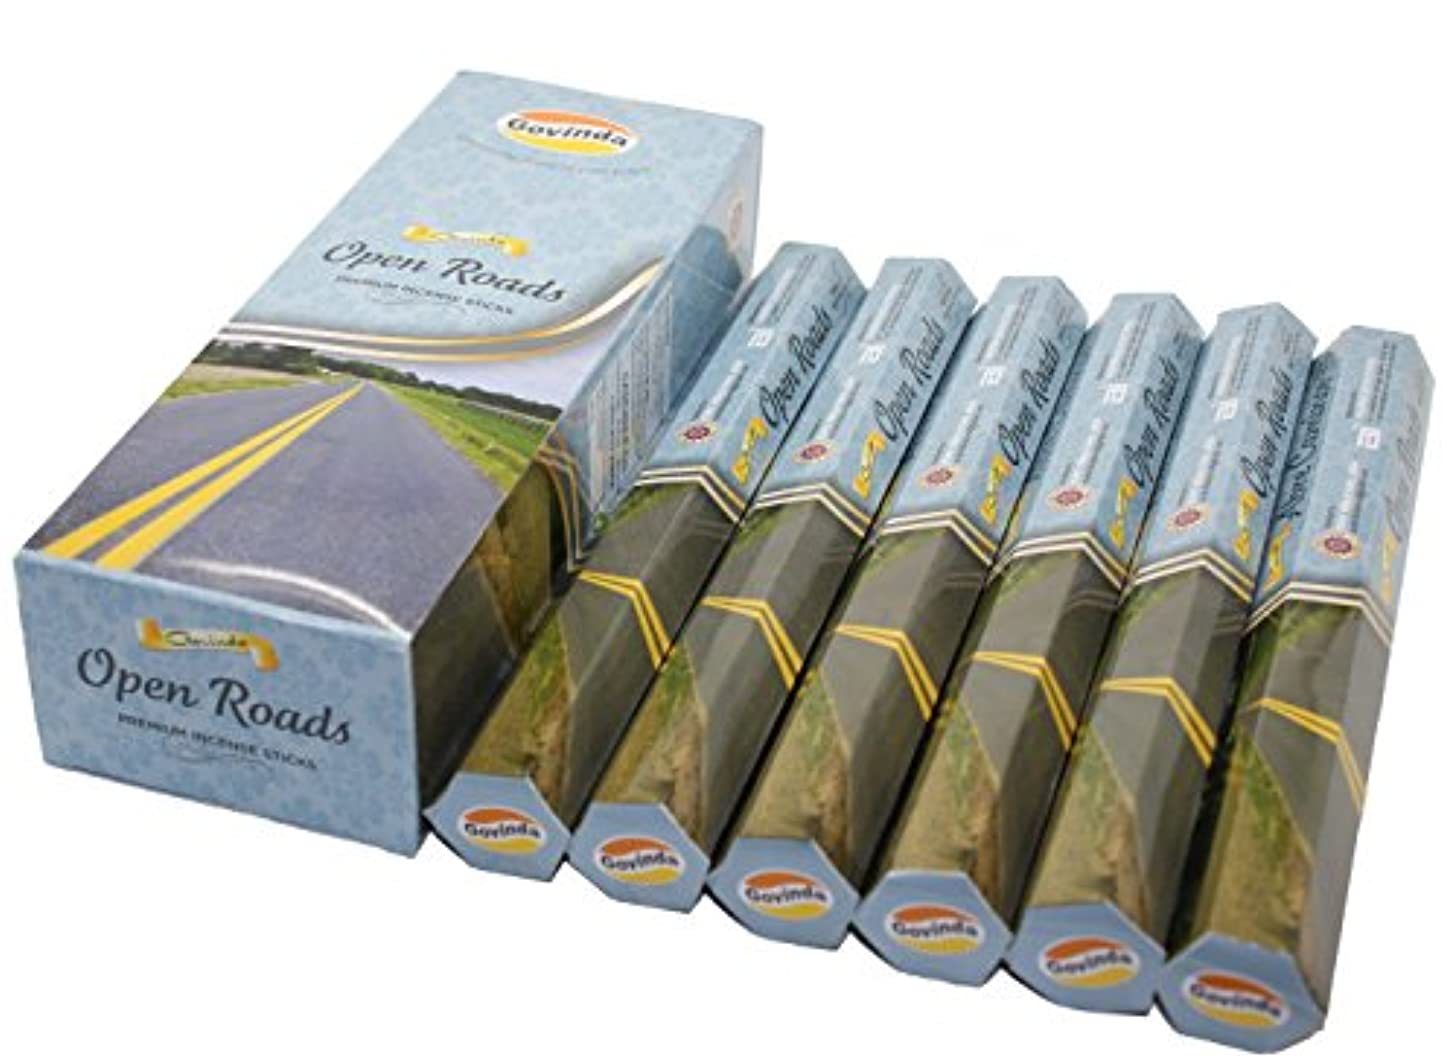 情熱降ろす罪Govinda ® Incense – Open Roads – 120 Incense Sticks、プレミアムIncense、Masalaコーティング